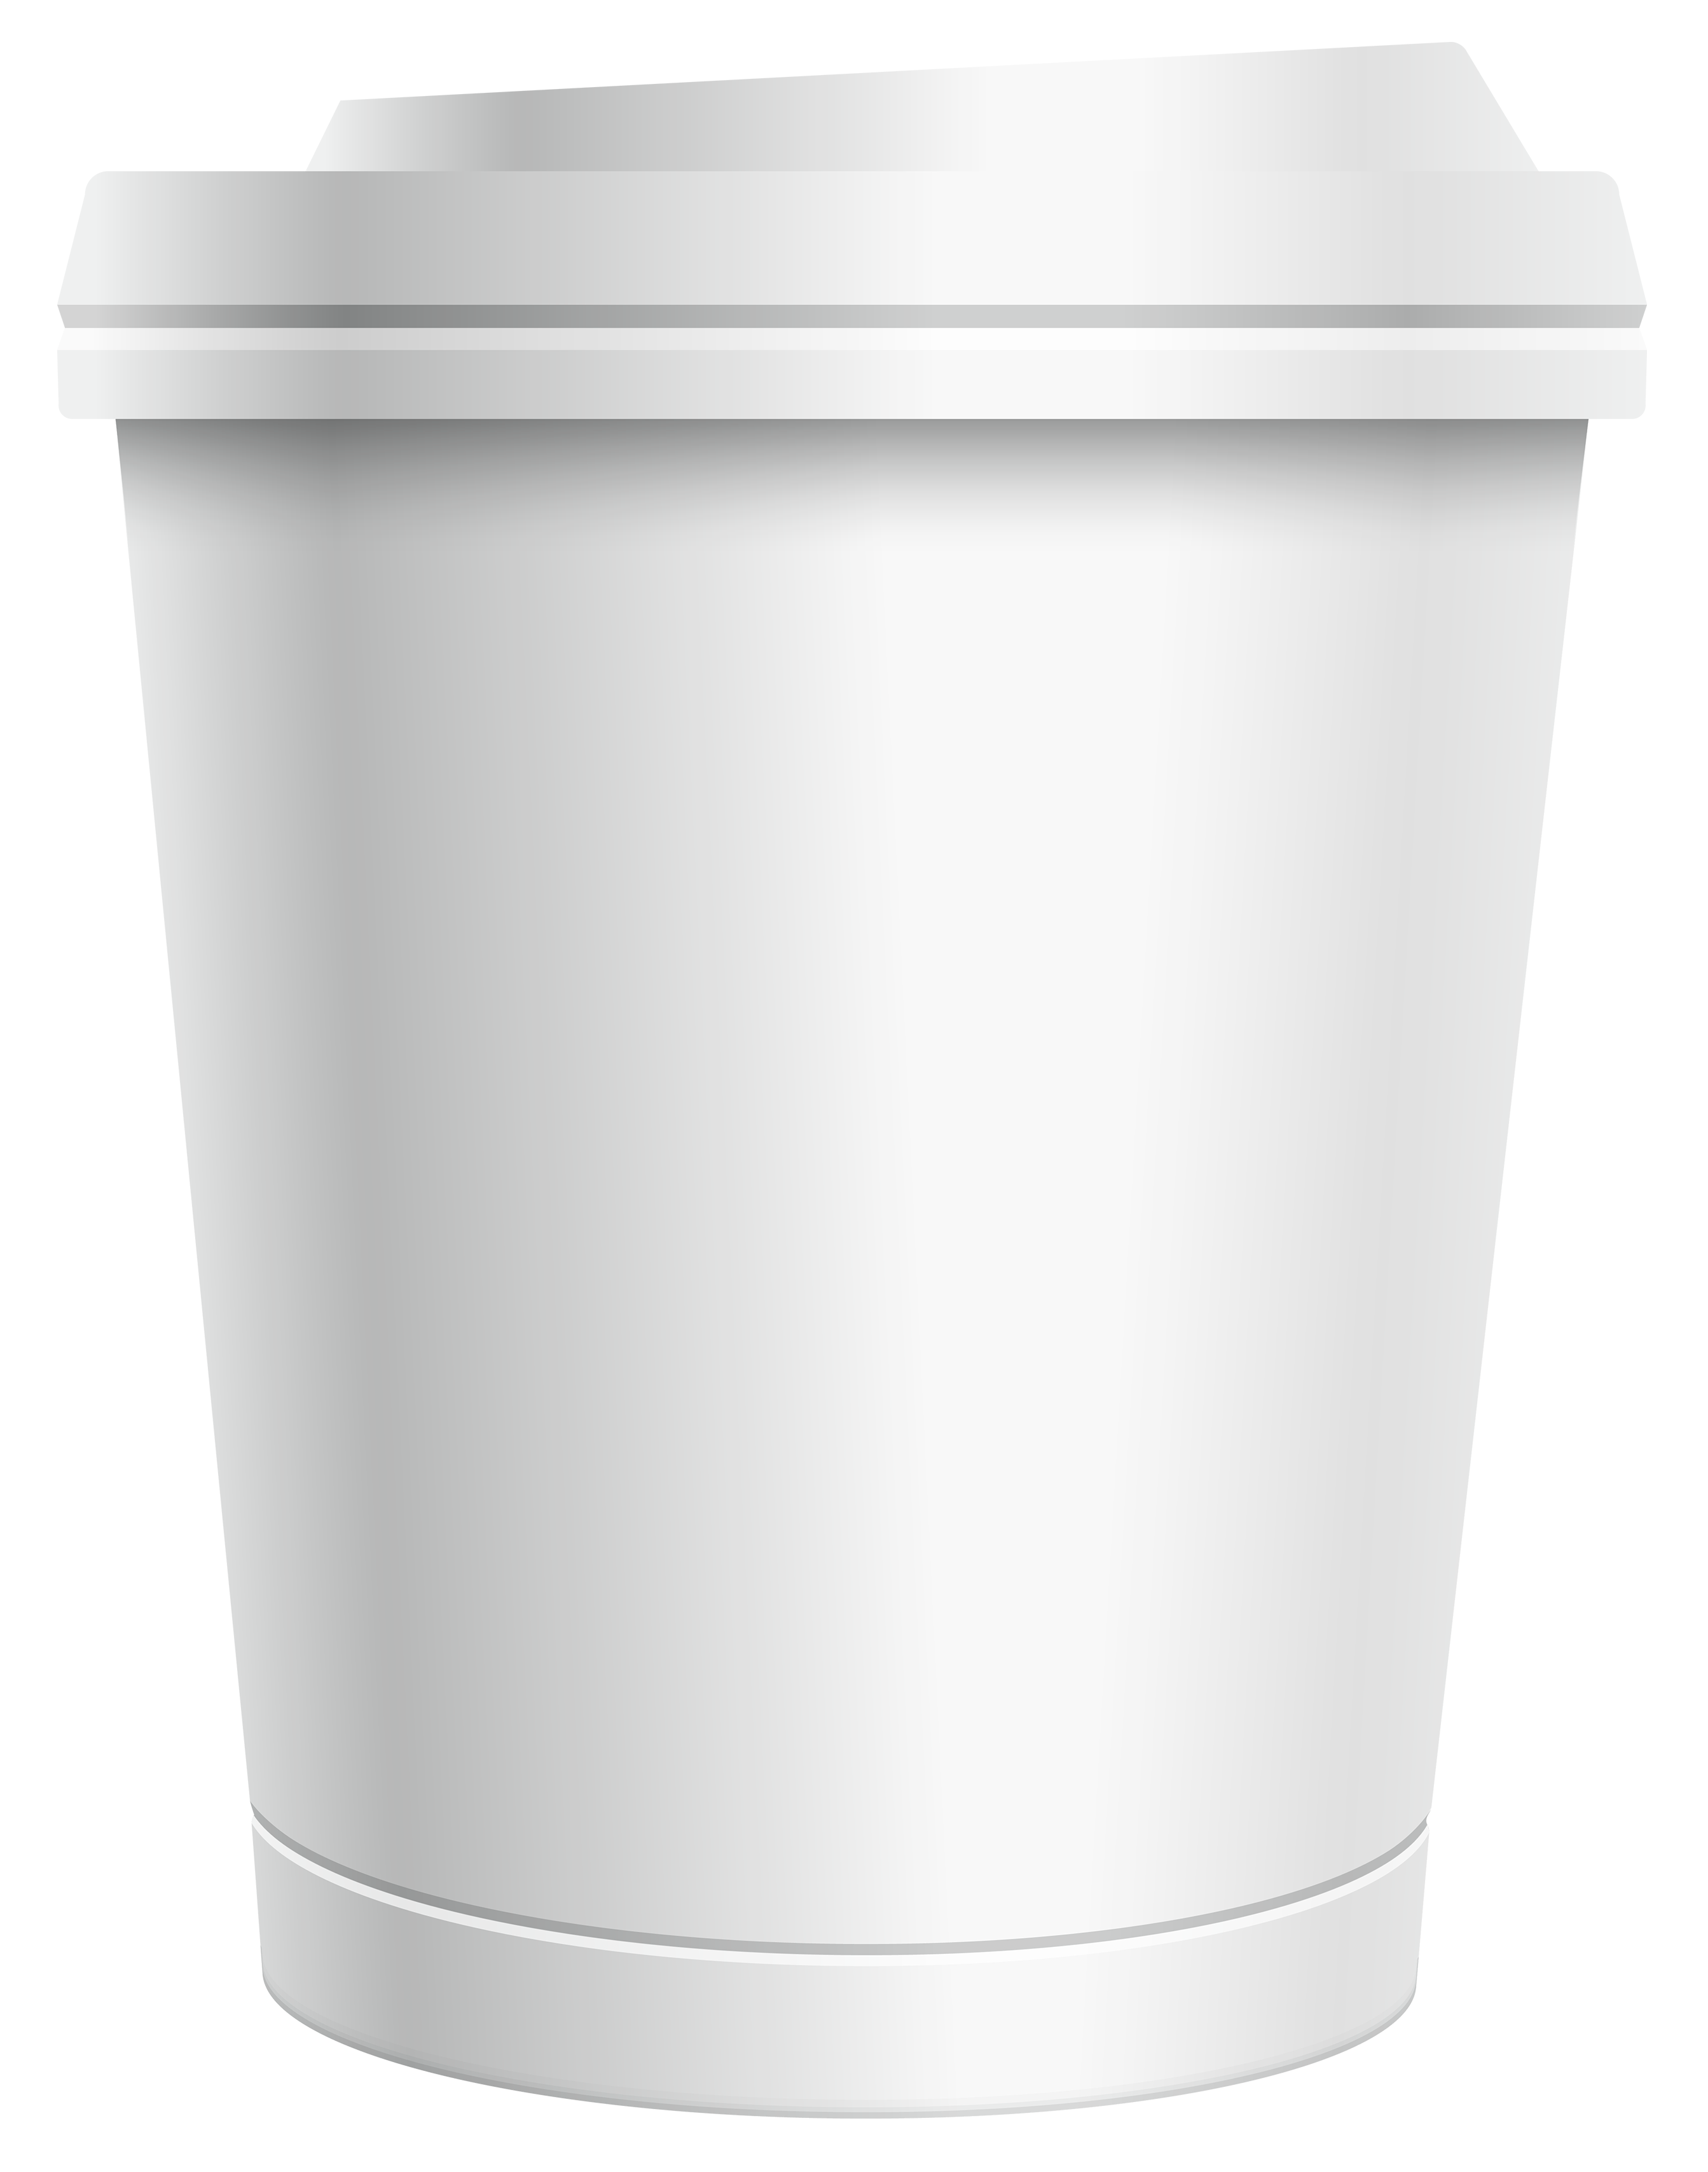 banner freeuse Plastic white png image. To go coffee cup clipart